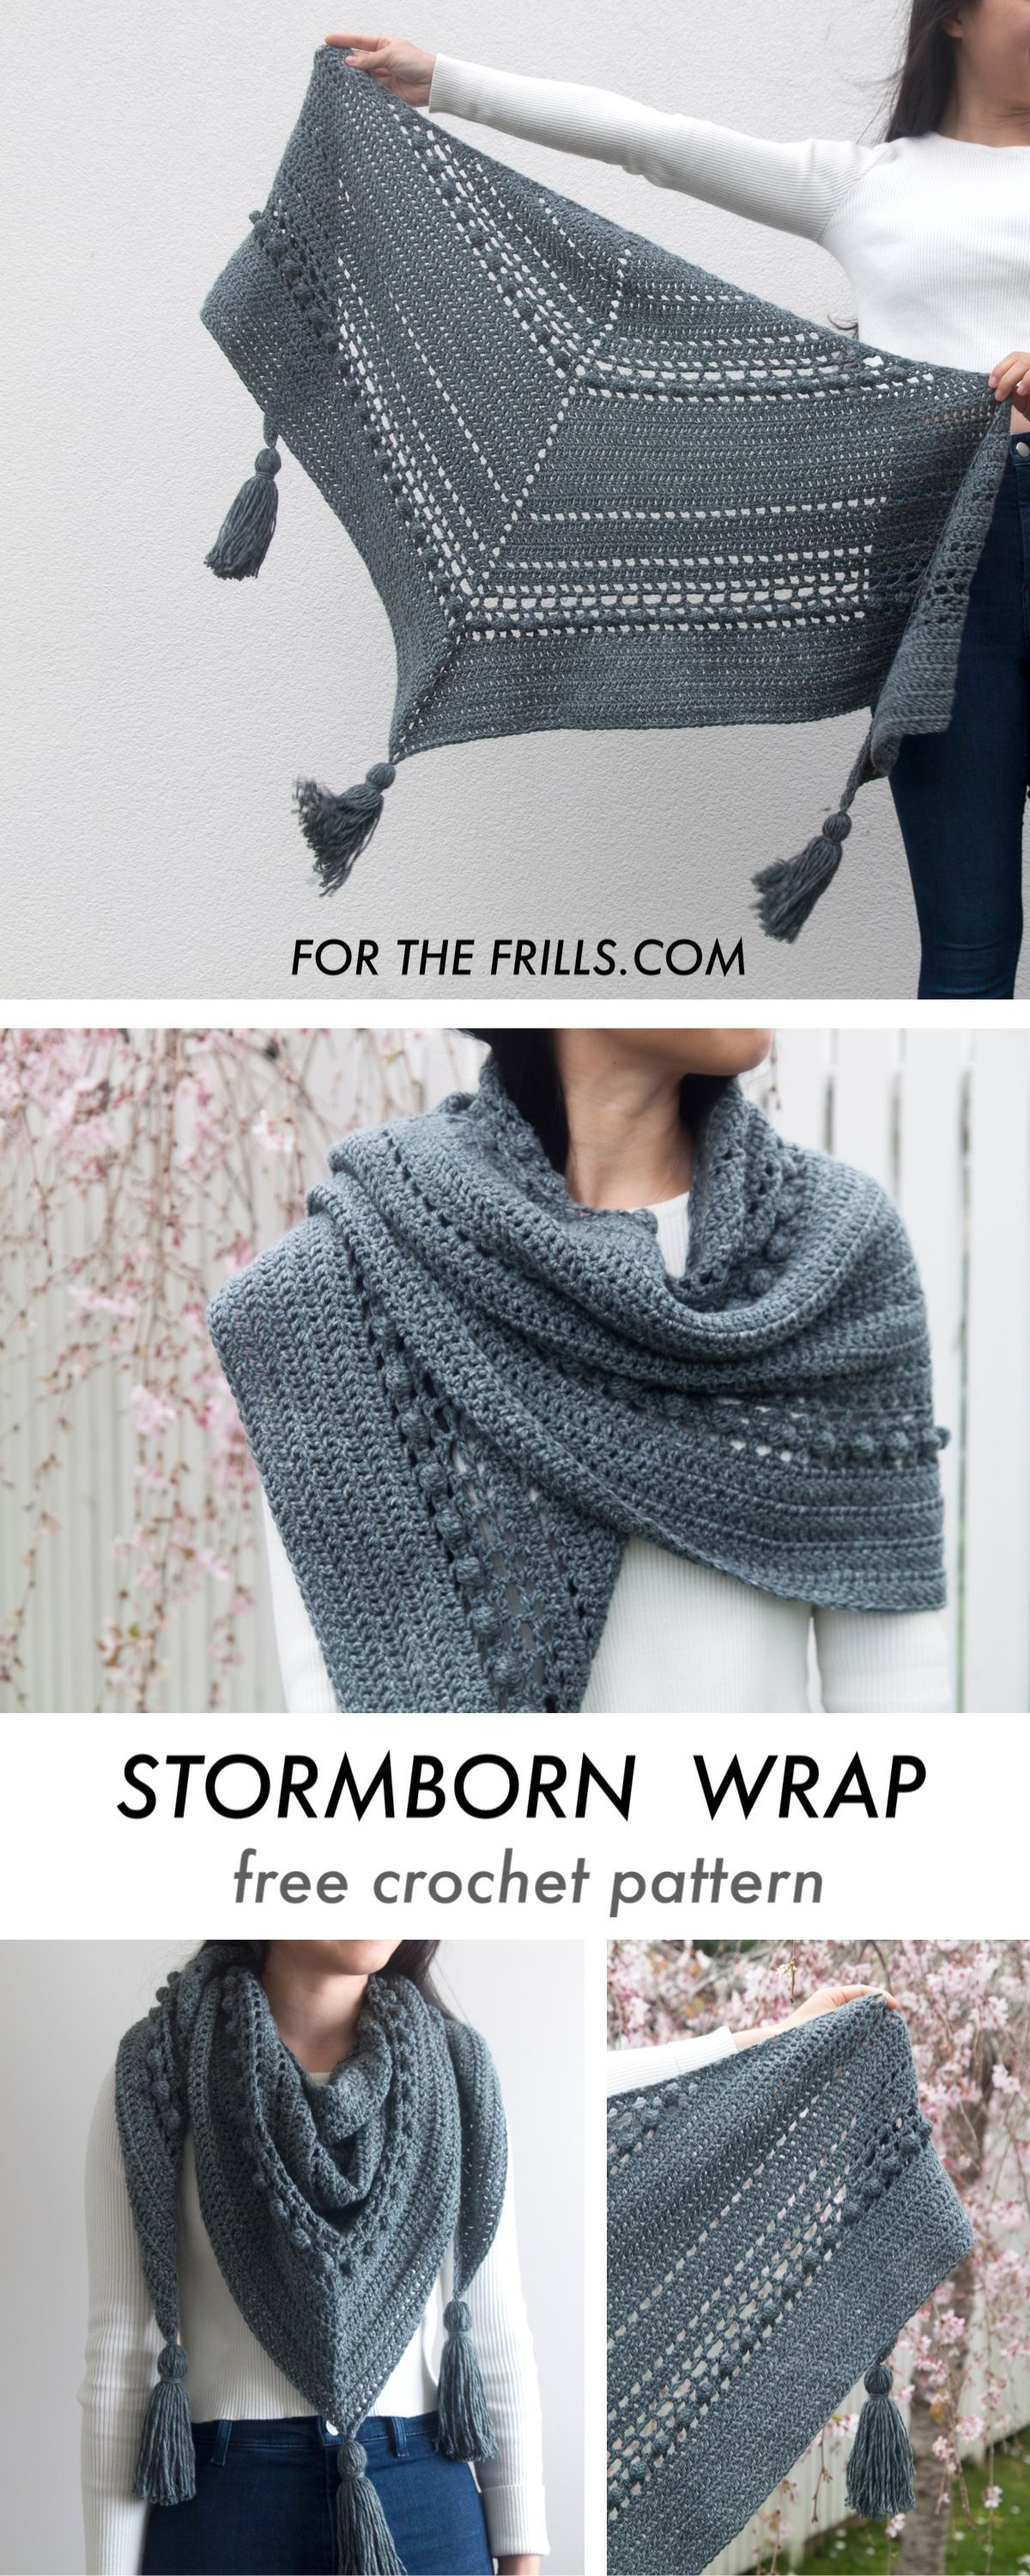 Stormborn Wrap – Bobble Crochet Wrap with Chunky Tassels – free pattern for the frills